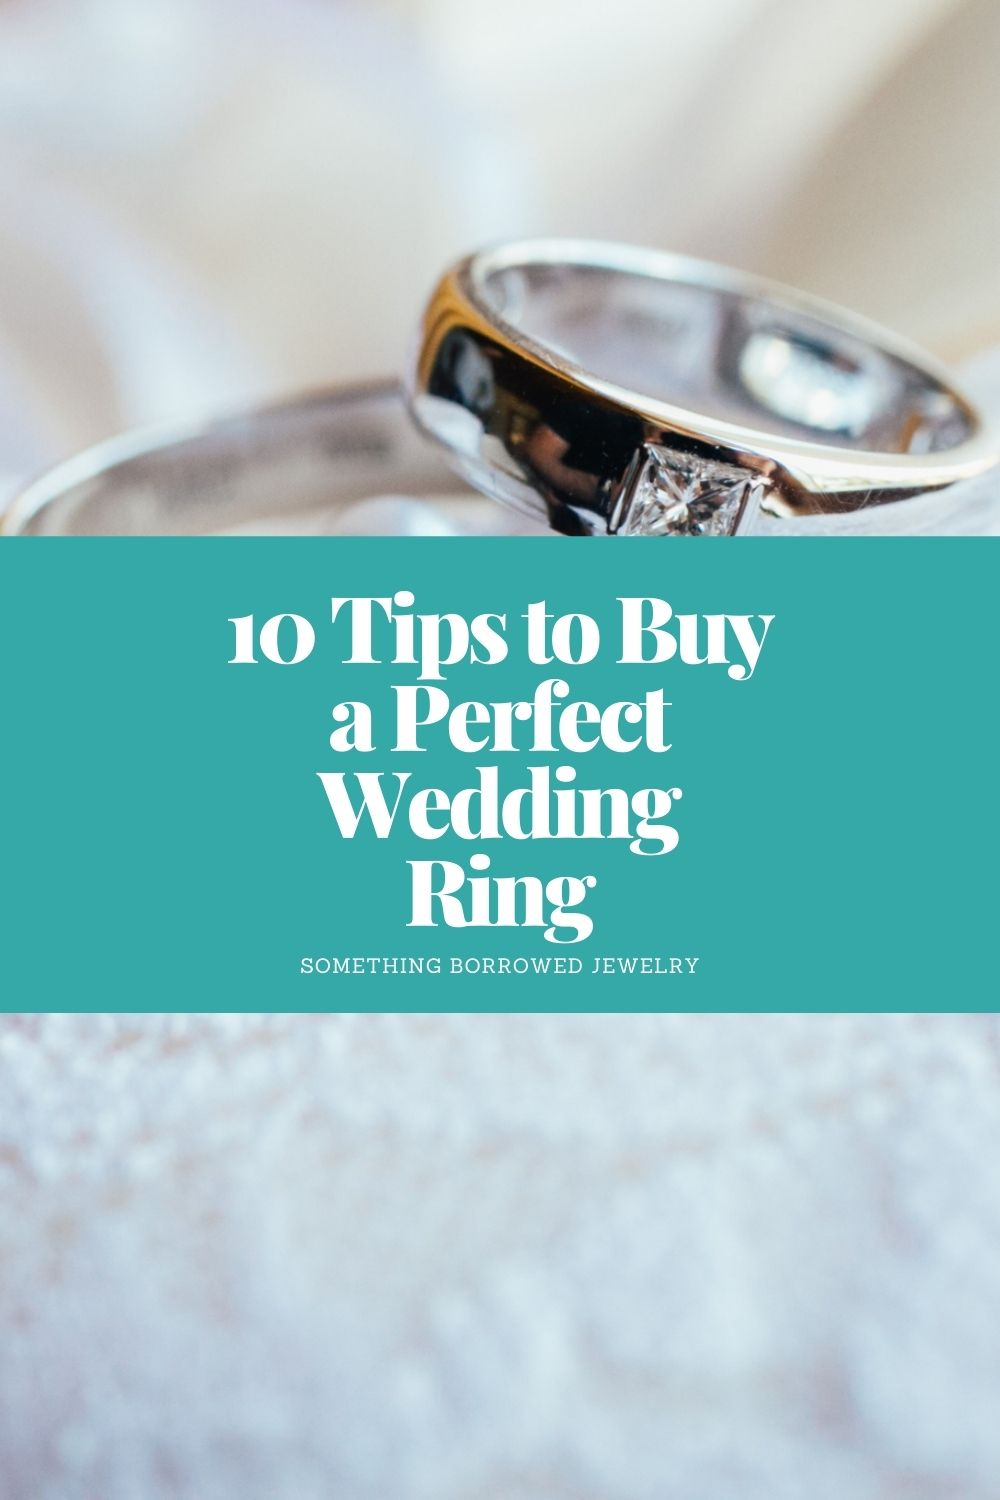 10 Tips to Buy a Perfect Wedding Ring pin